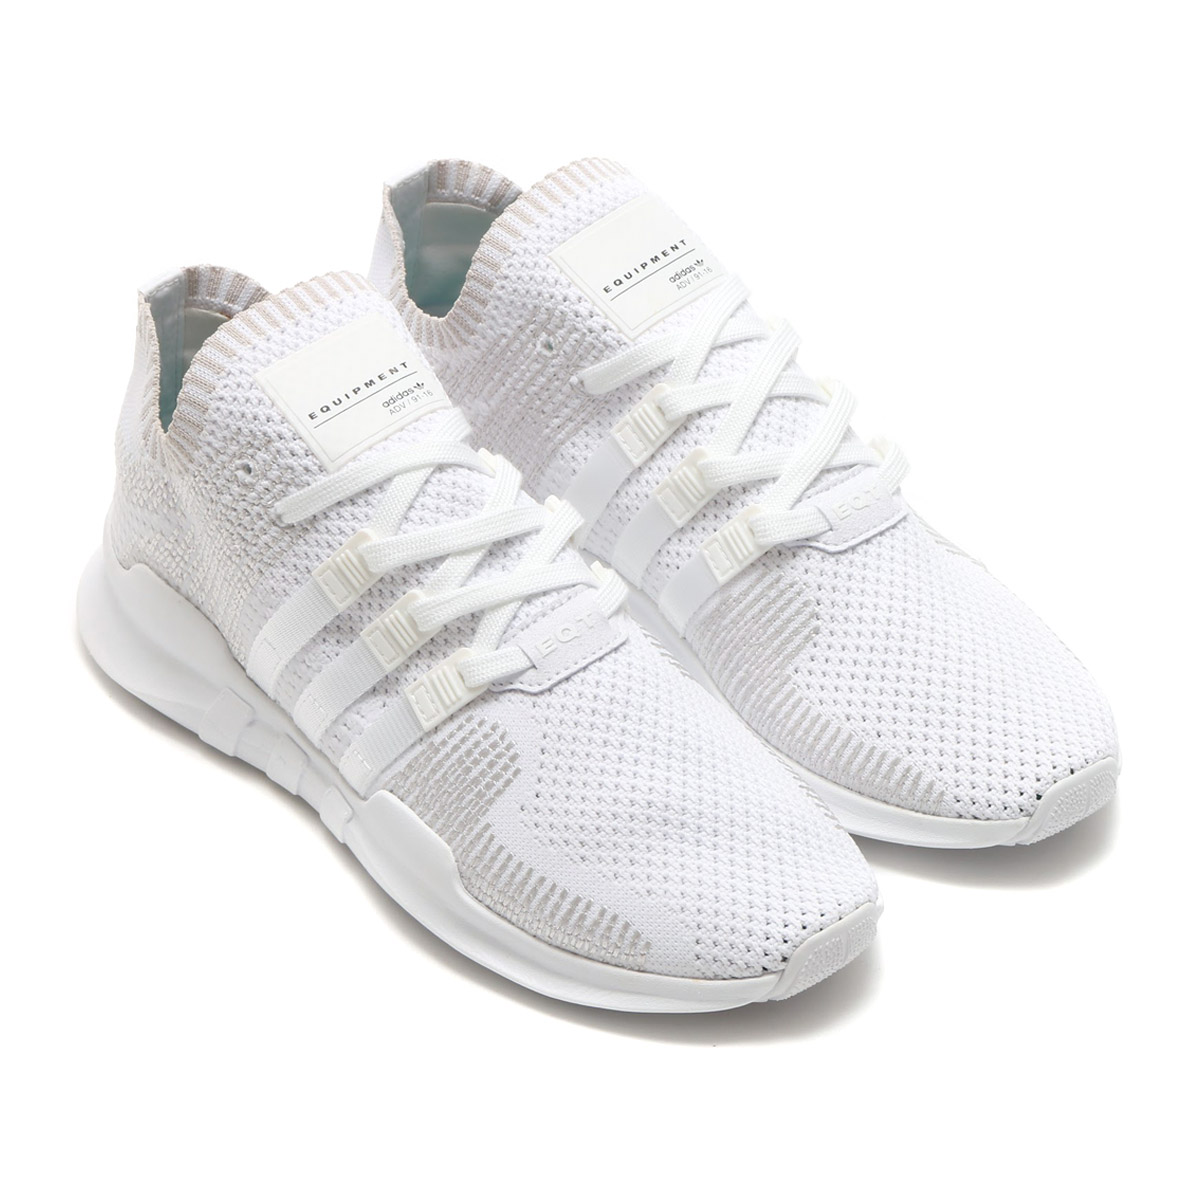 cheap for discount d921a c6c74 adidas Originals EQT SUPPORTADV PK (Adidas originals EQT support ADV PK)  RUNNING WHITE/RUNNING WHITE/SUB GREEN 17FW-I